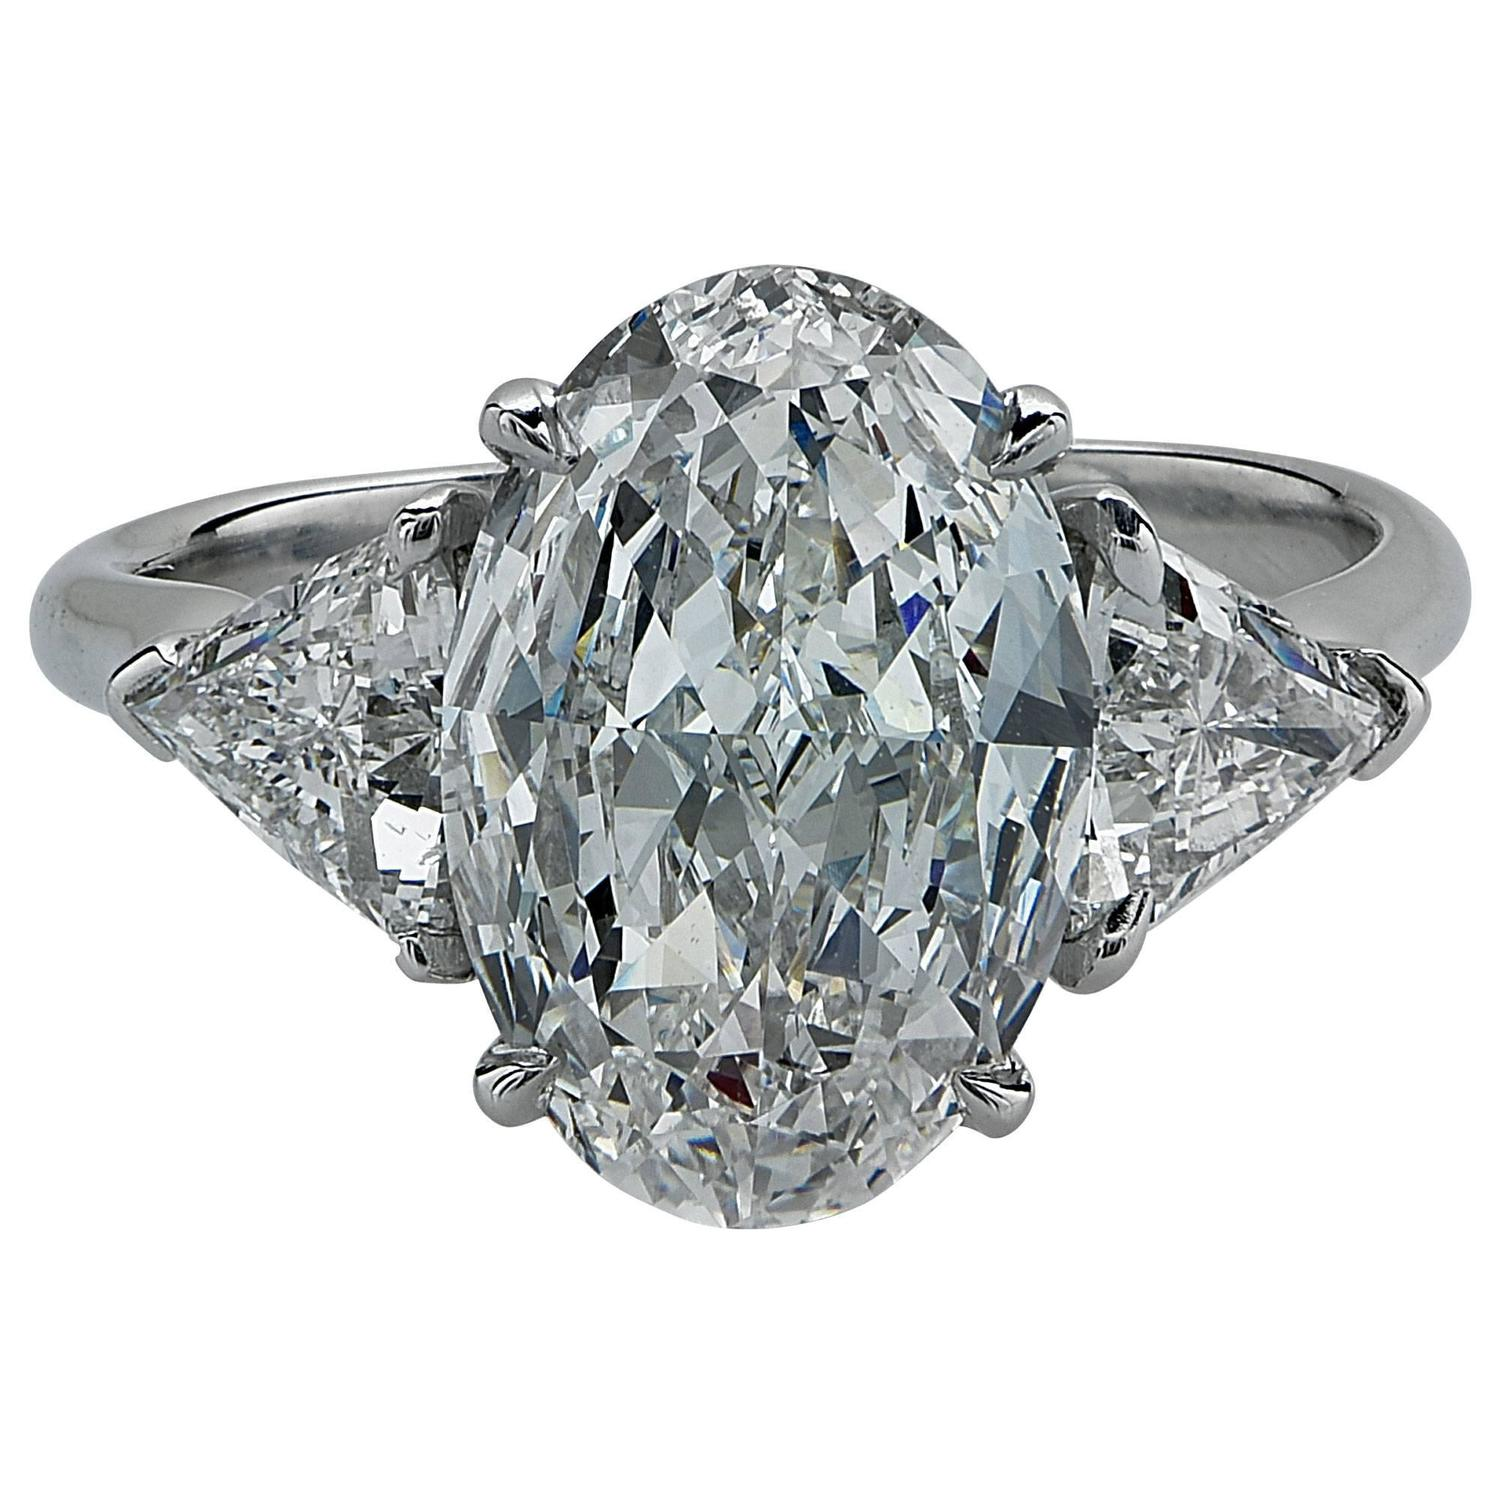 2 82 Carat GIA Cert Oval Diamond Platinum Engagement Ring For Sale at 1stdibs